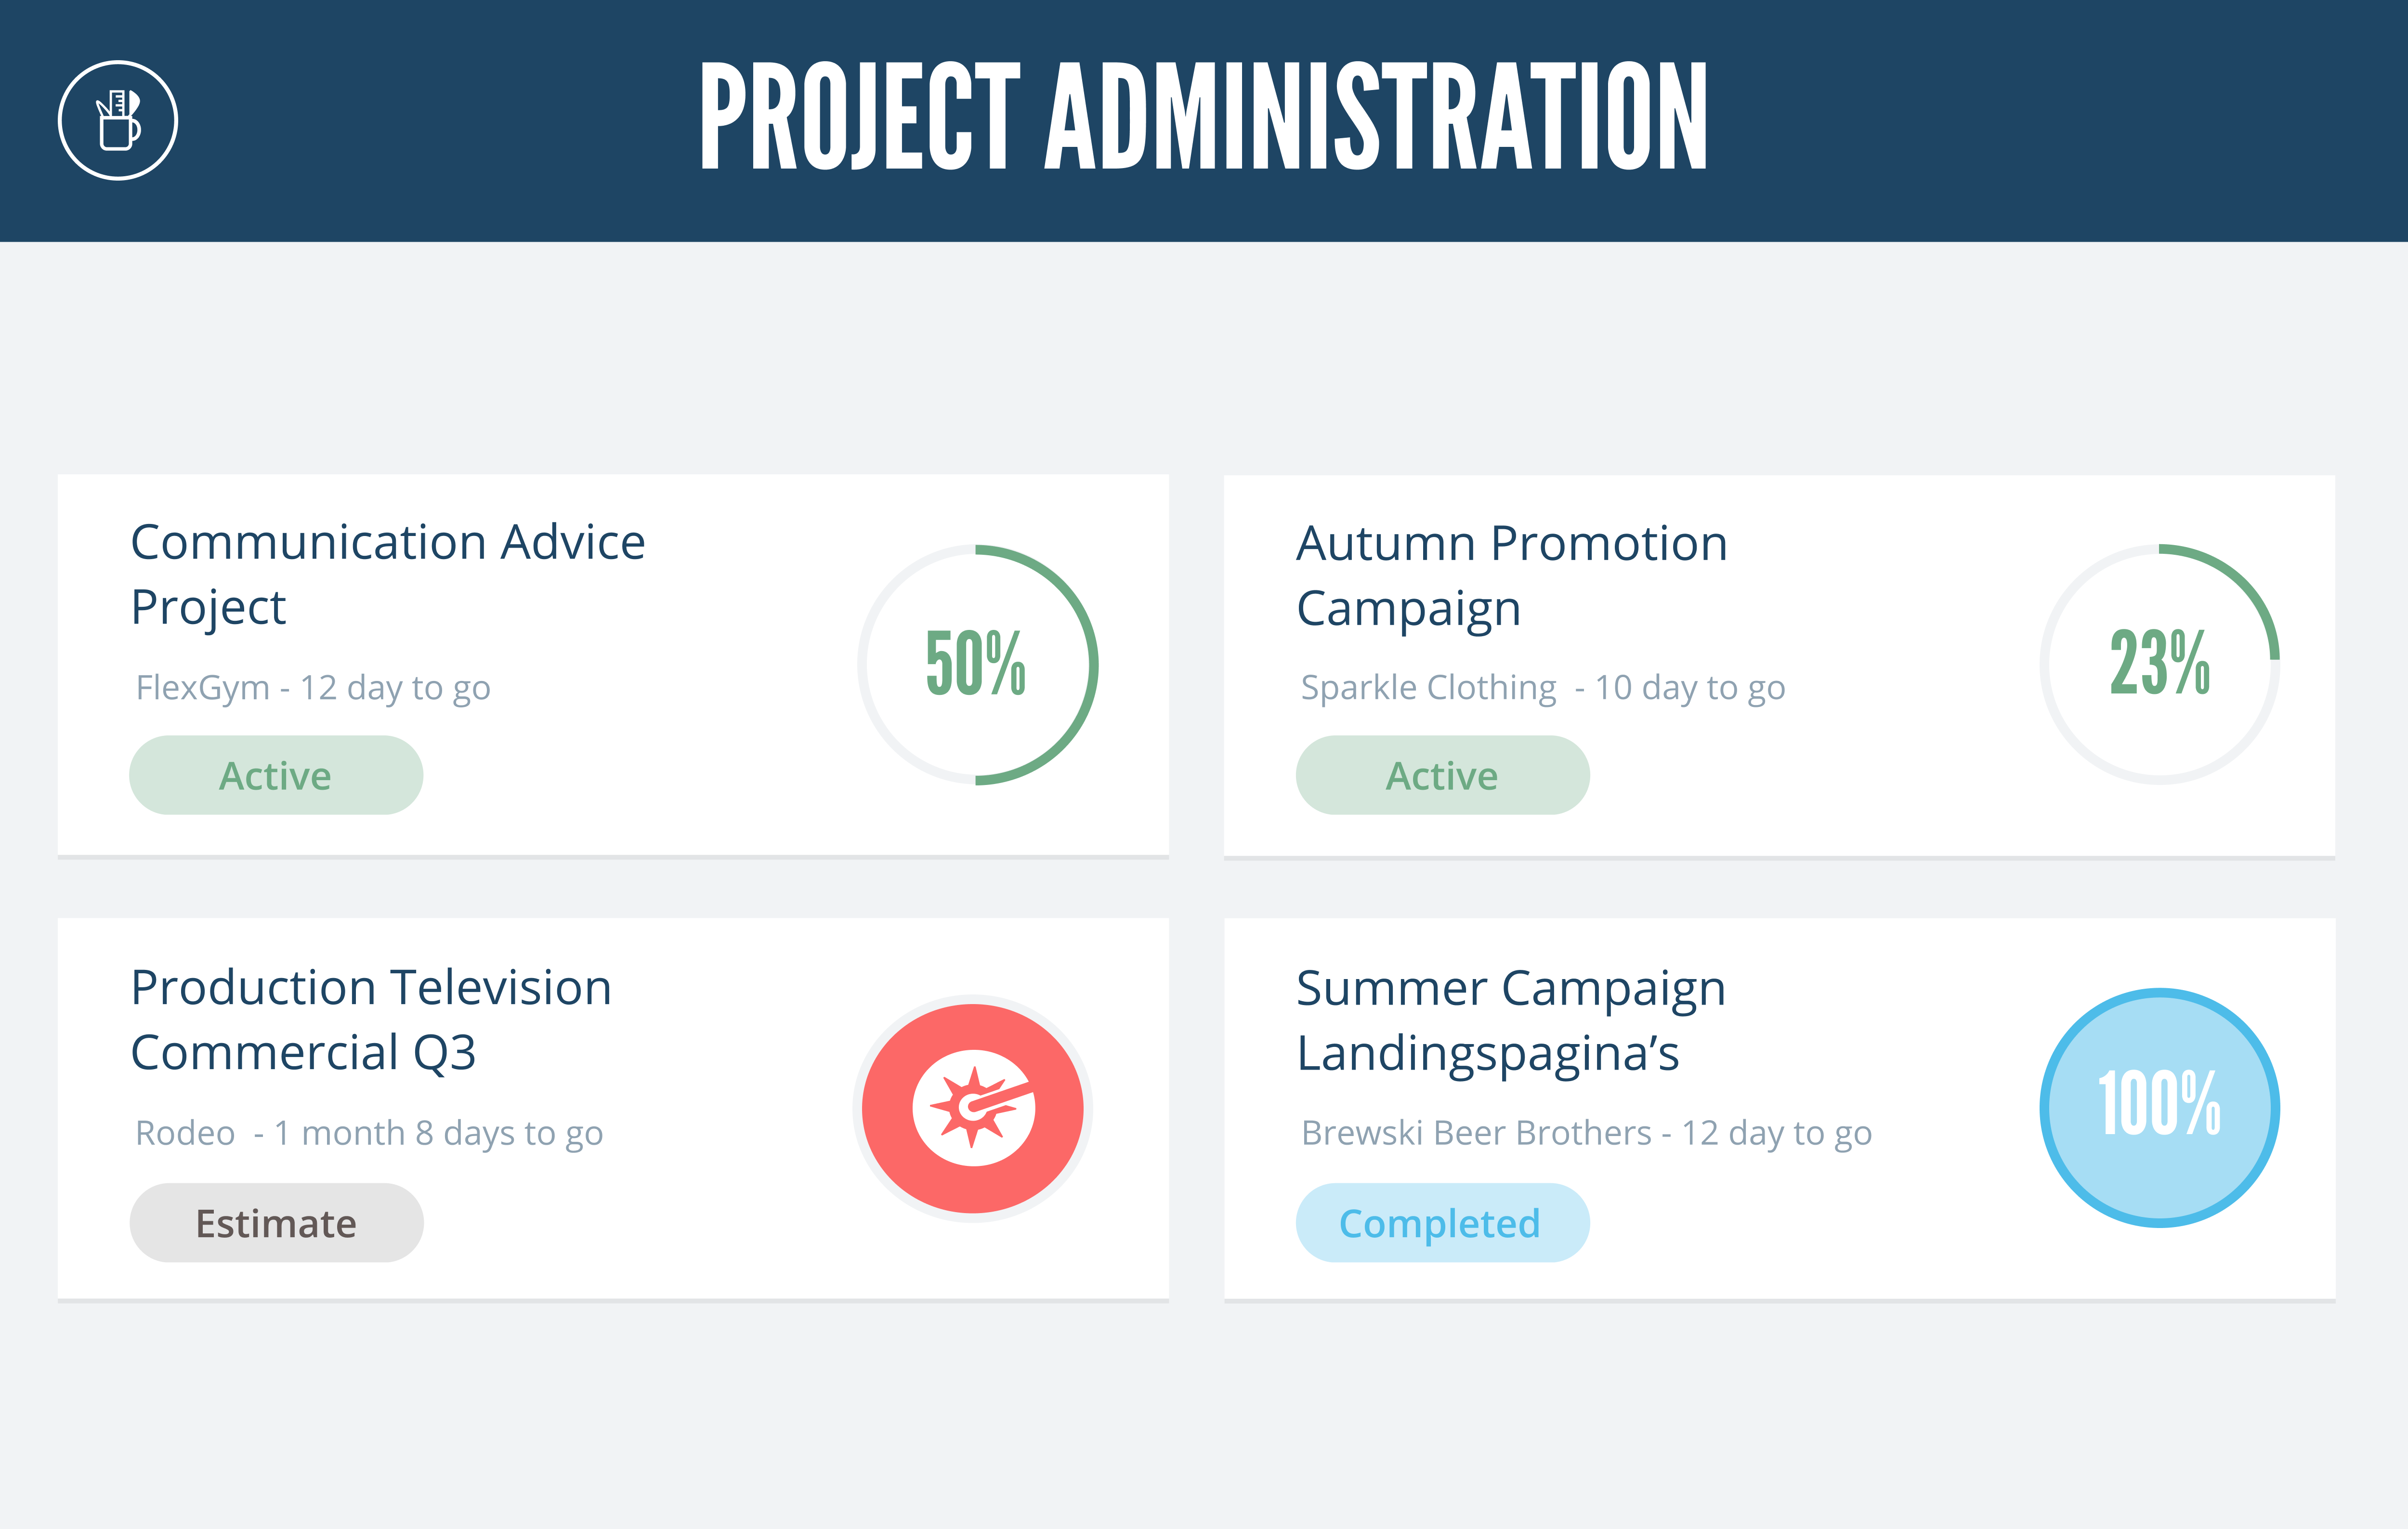 Rodeo project administration